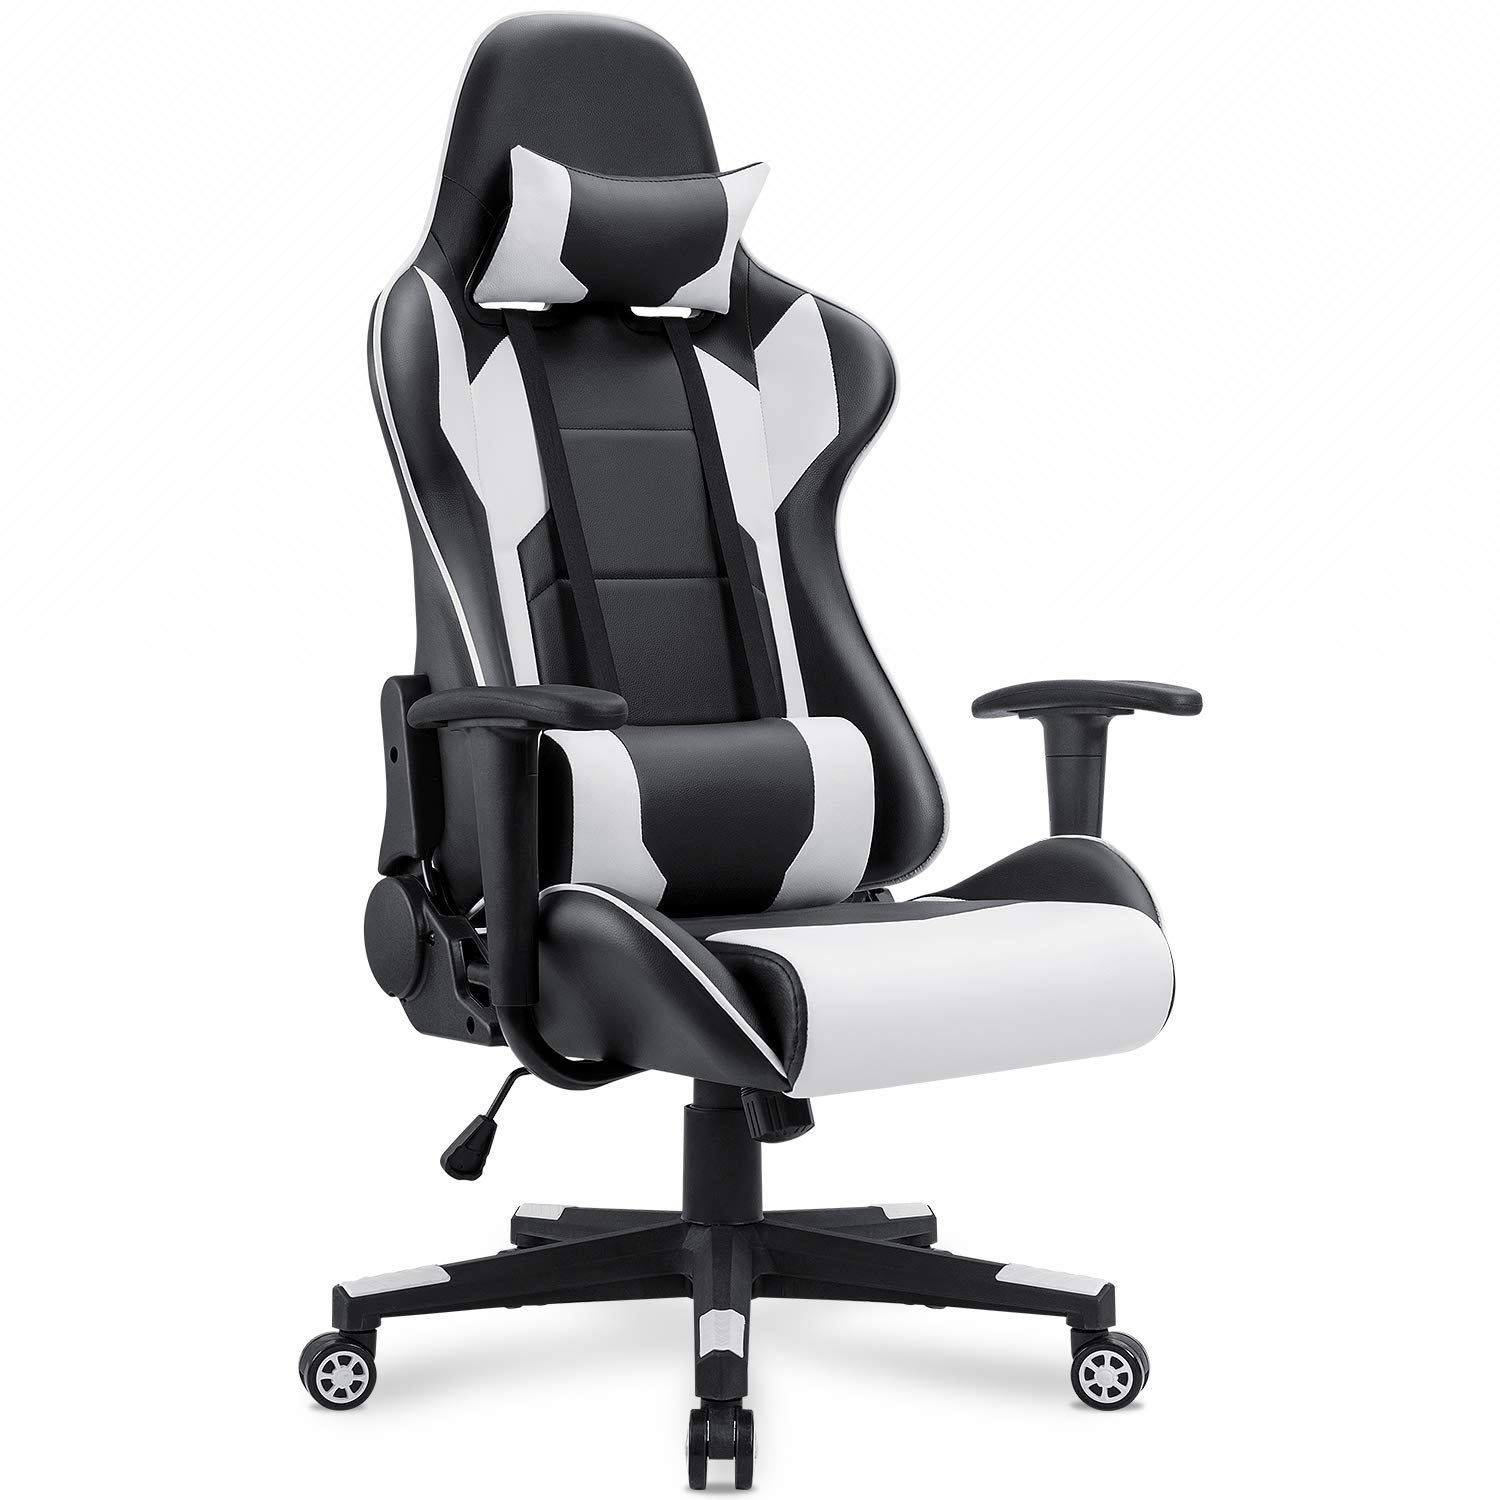 5 Best Gaming Chairs Under 200 In 2020 For Game Crazier Leather Office Chair Gaming Chair Computer Desk Chair